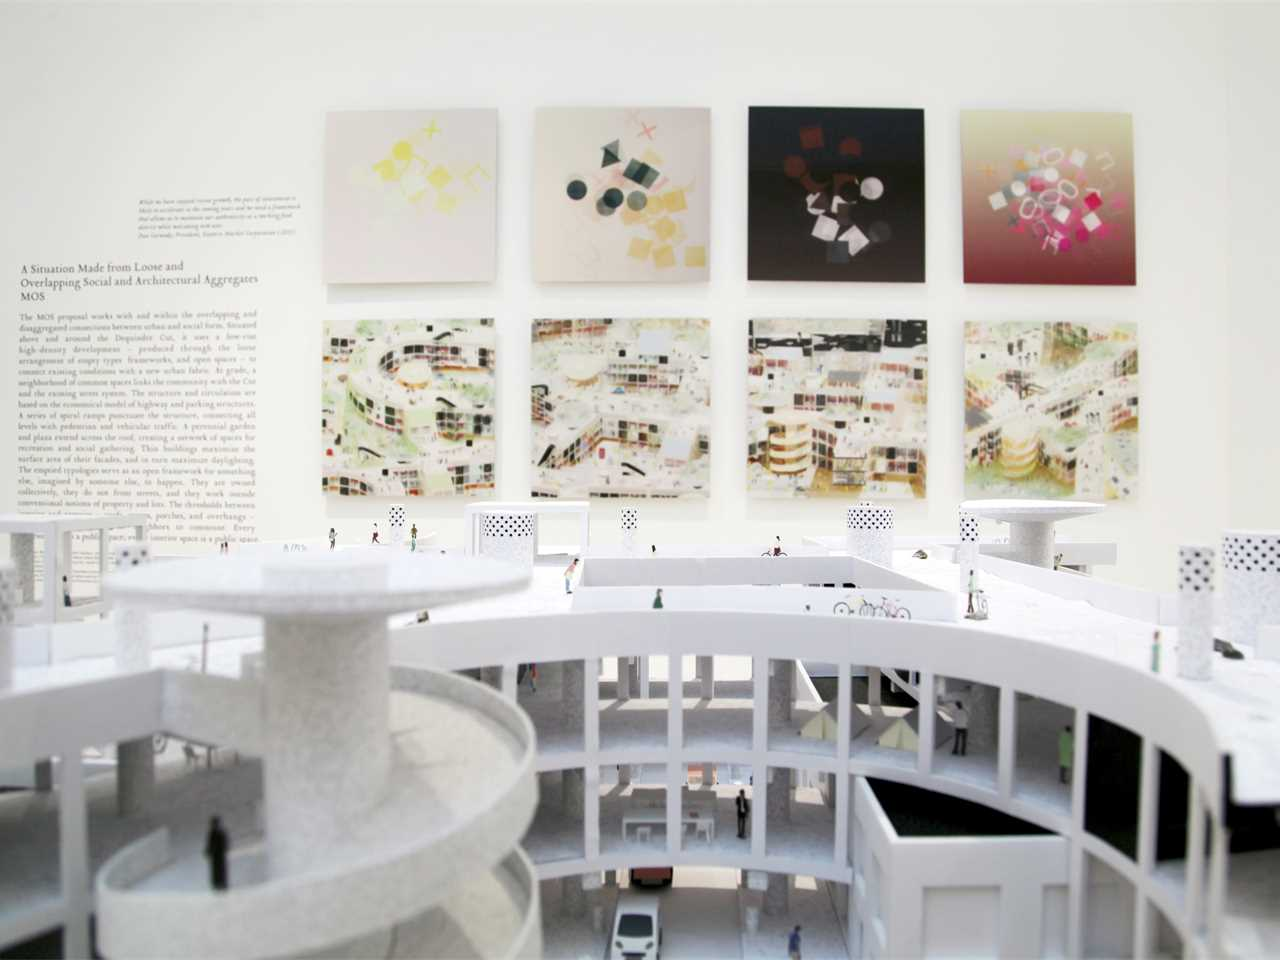 MOS Architects at 15th International Architecture Exhibition